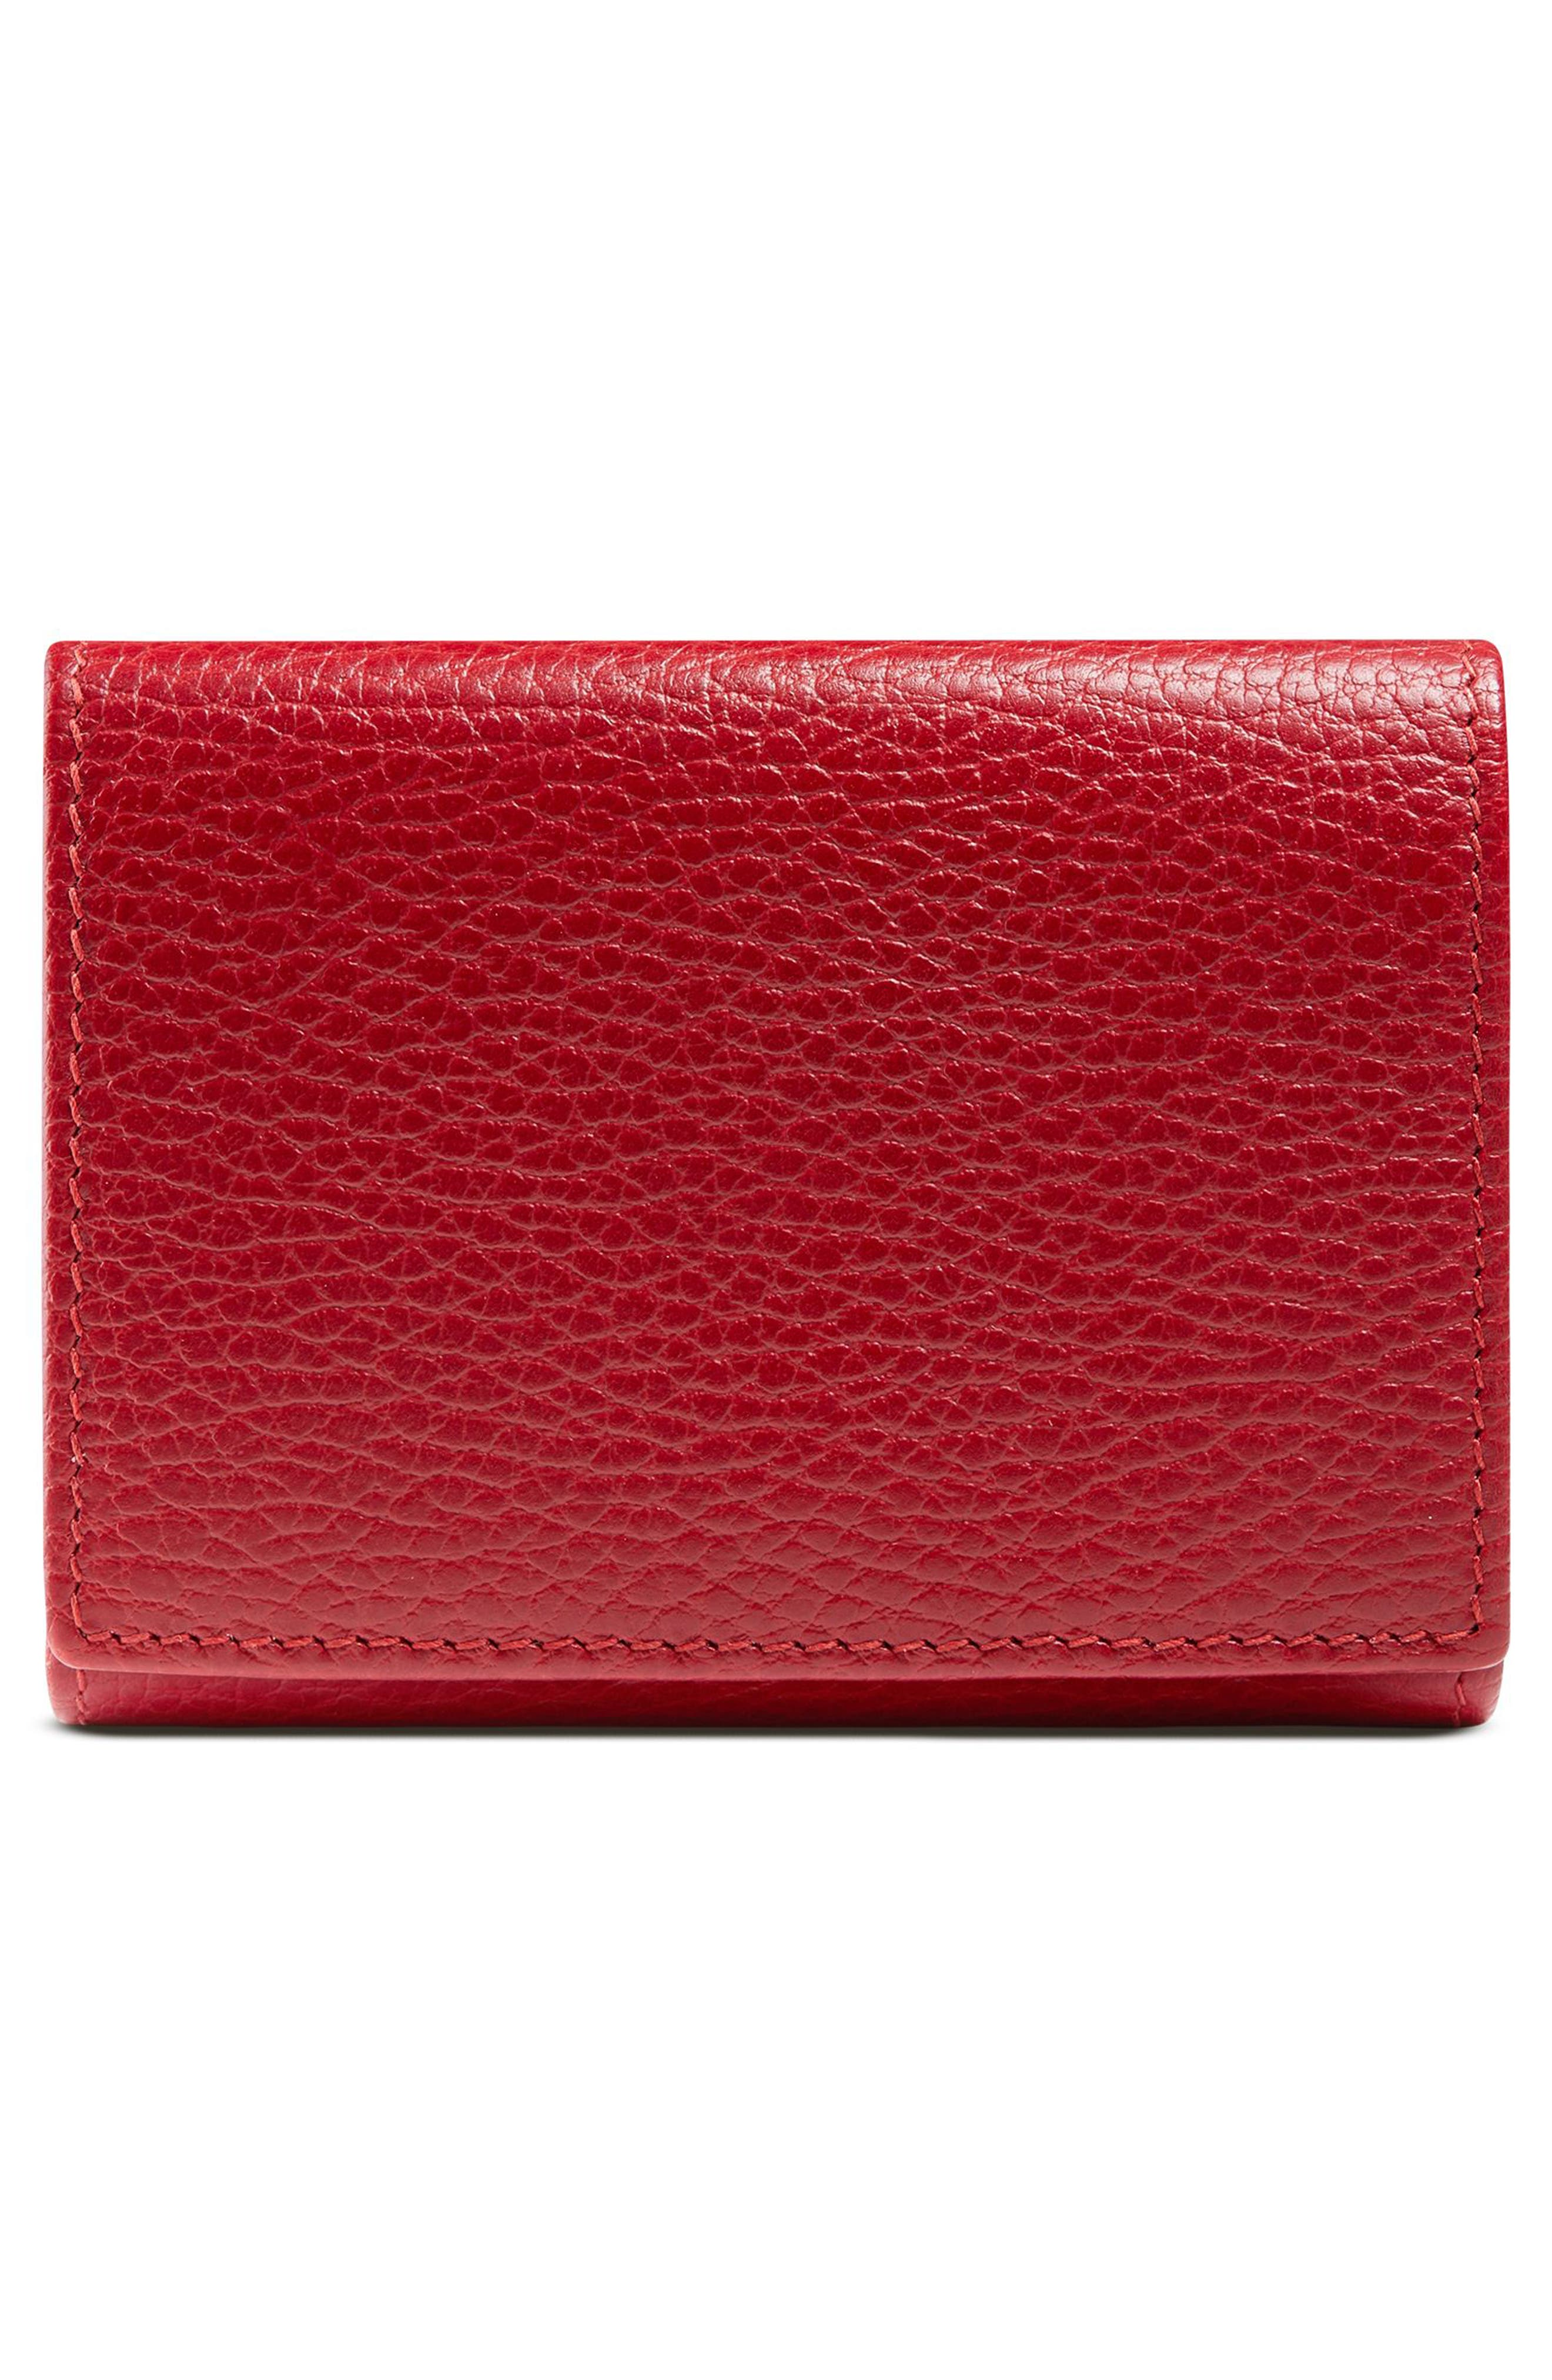 Petite Marmont Leather French Wallet,                             Alternate thumbnail 6, color,